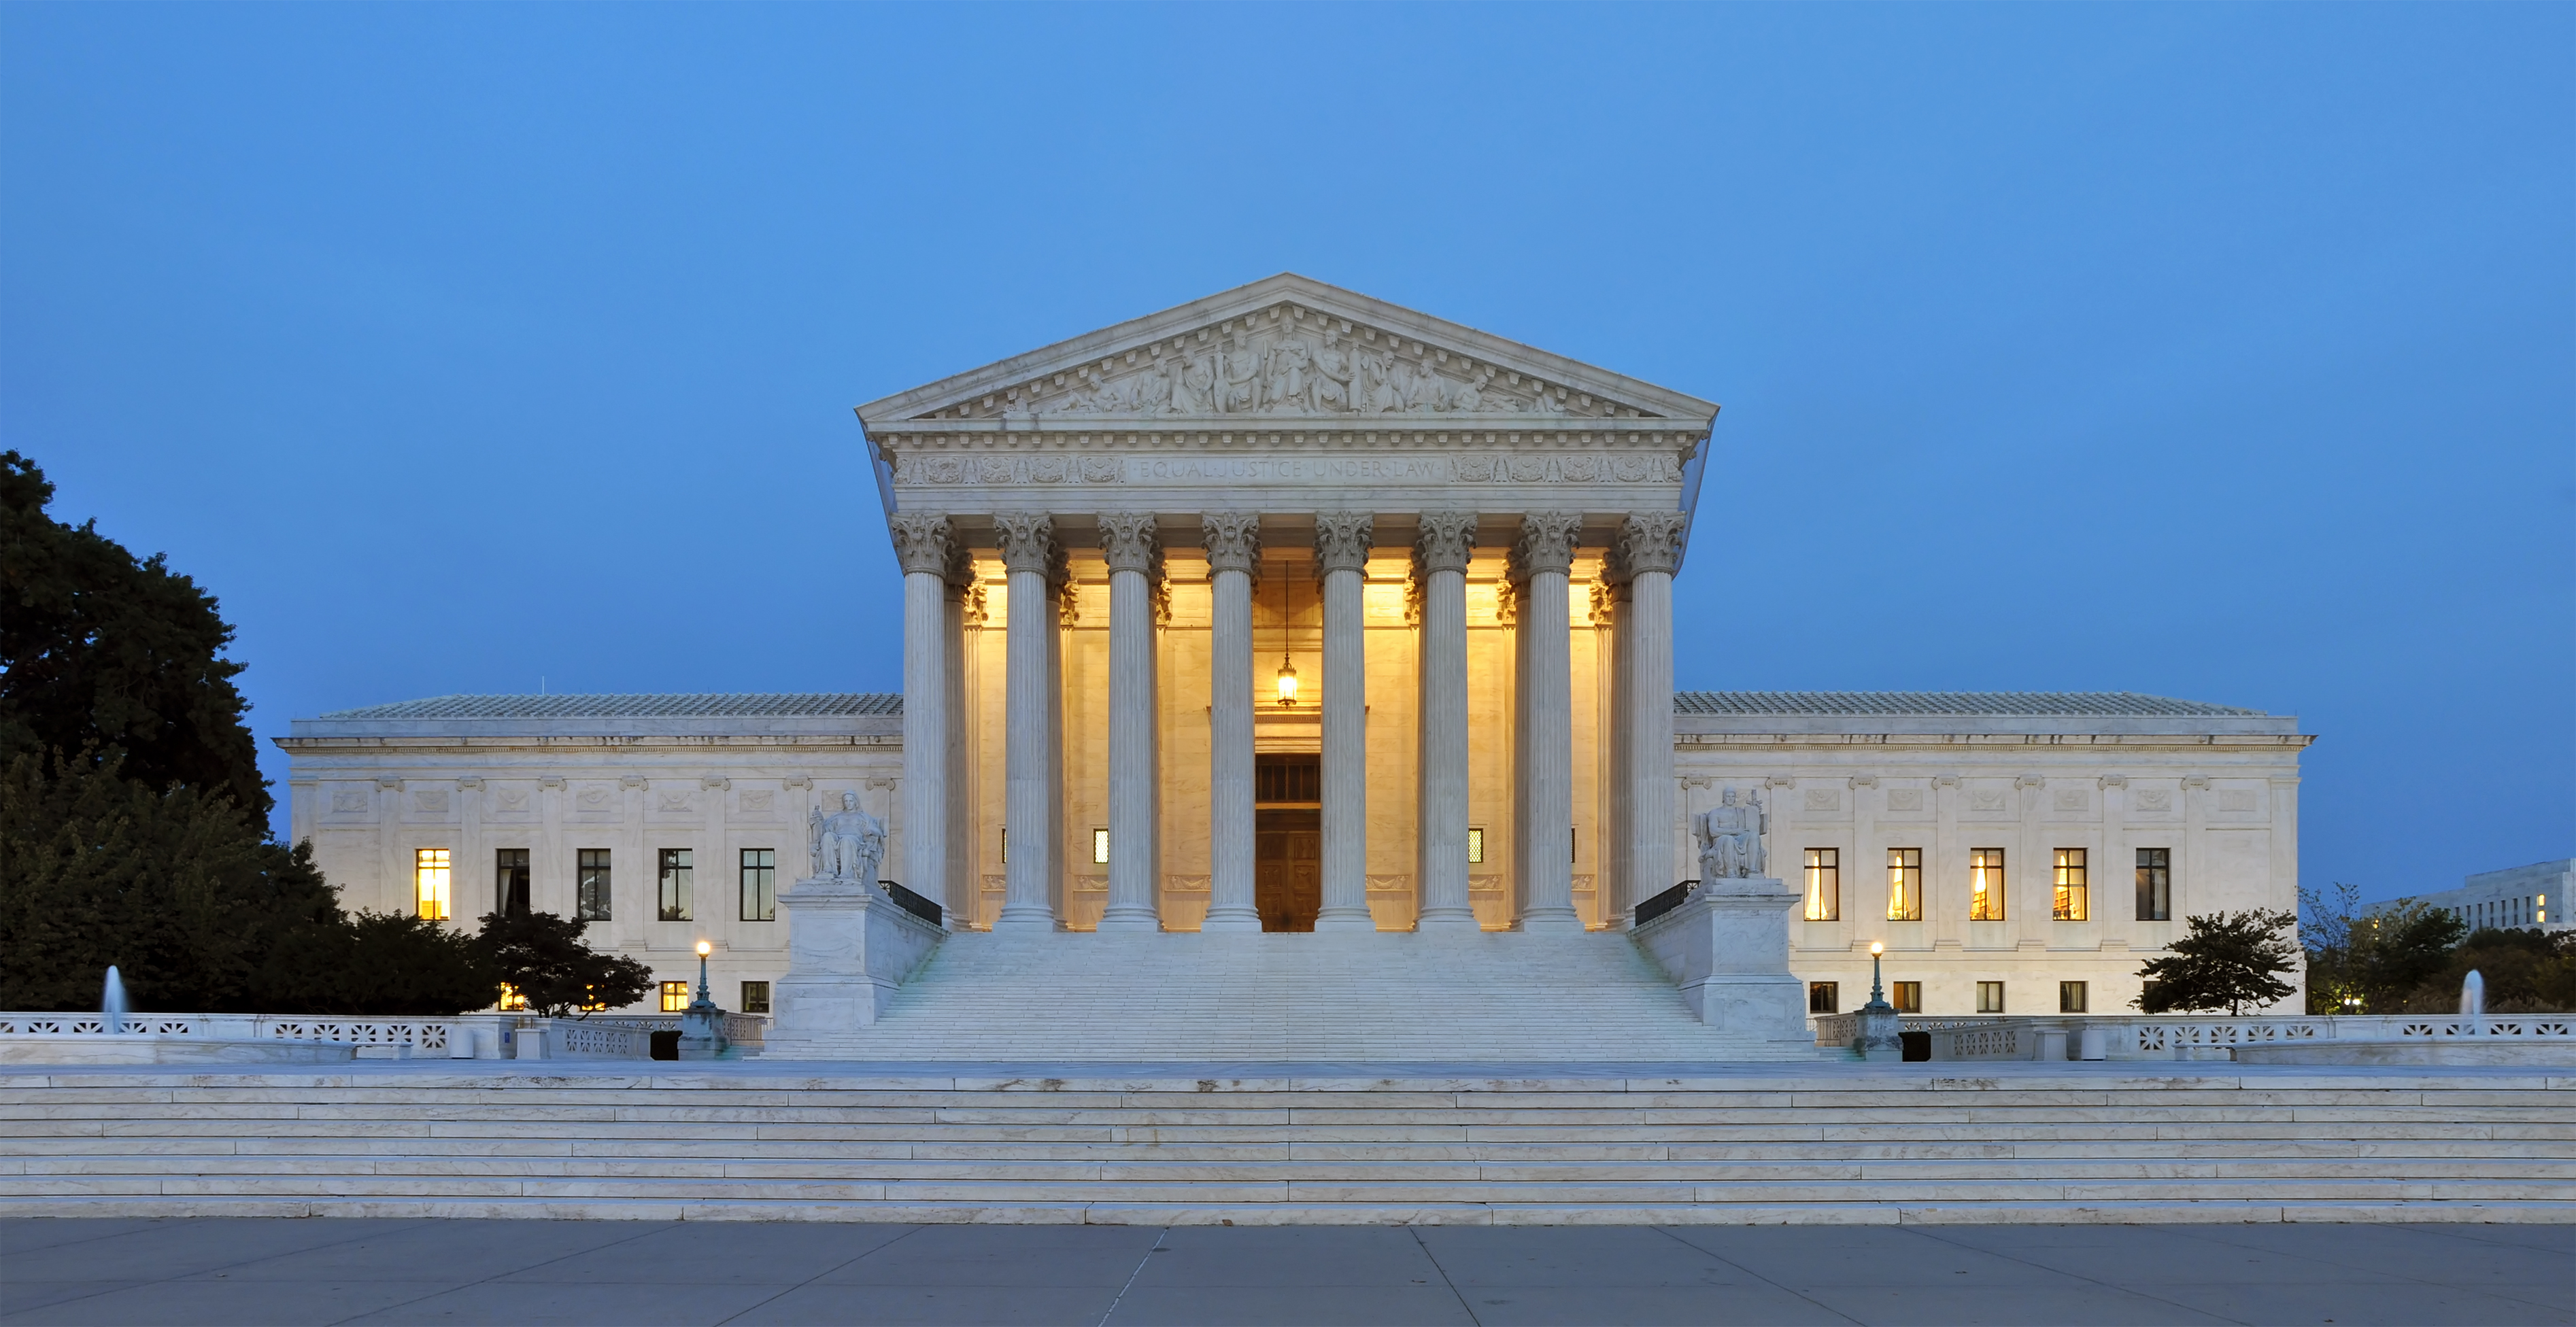 Panorama of United States Supreme Court Building at Dusk